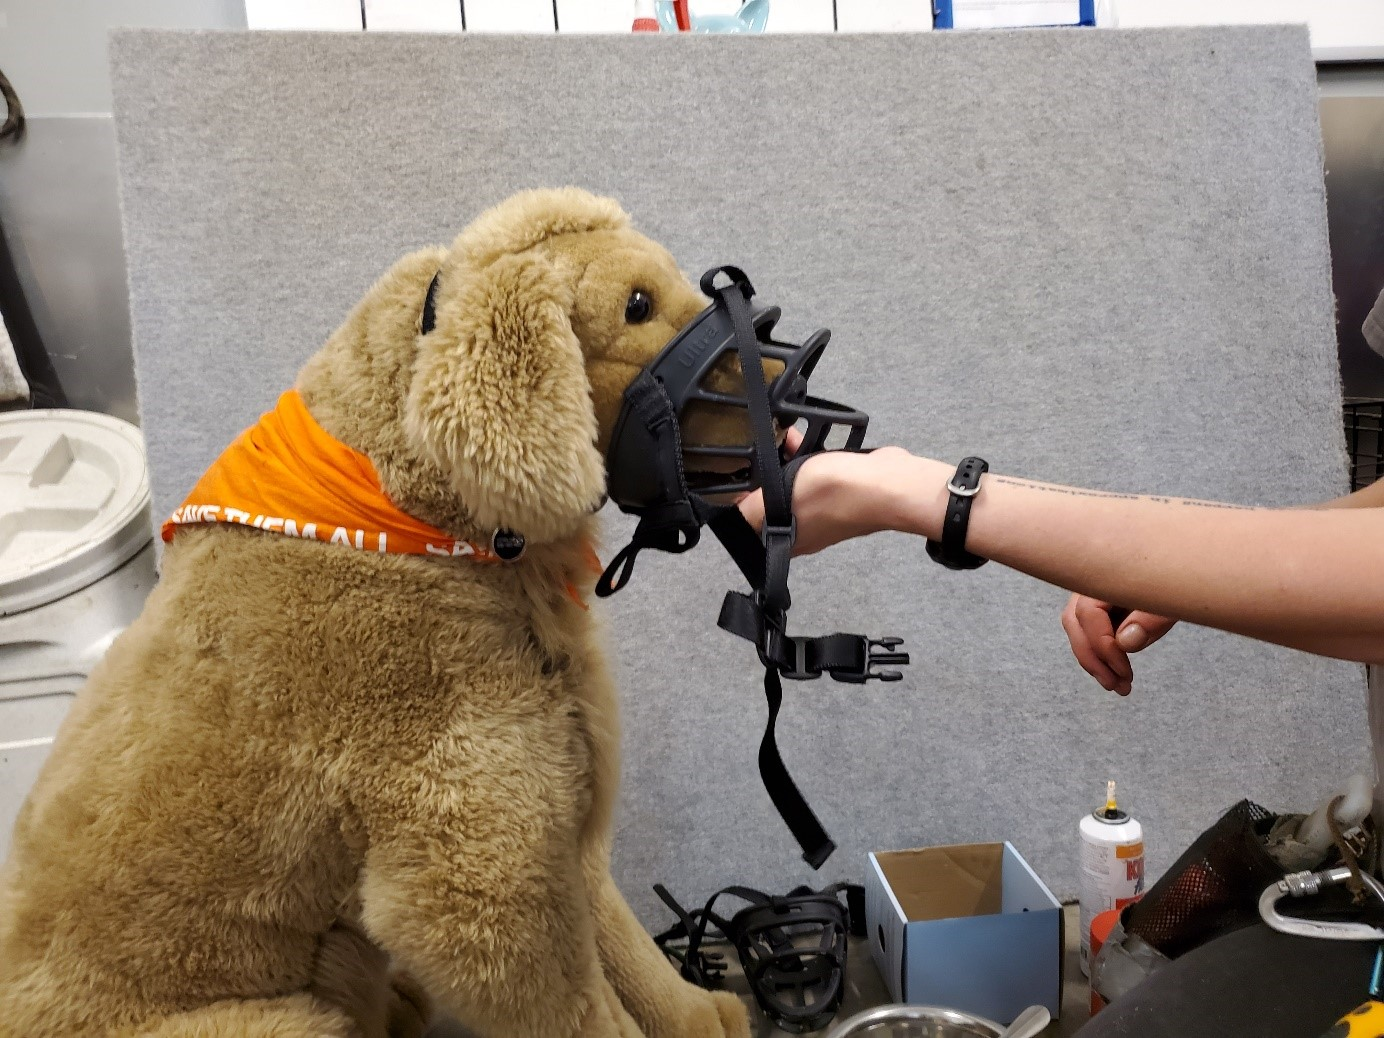 Muzzle with treat inside being placed on a plush dog for training